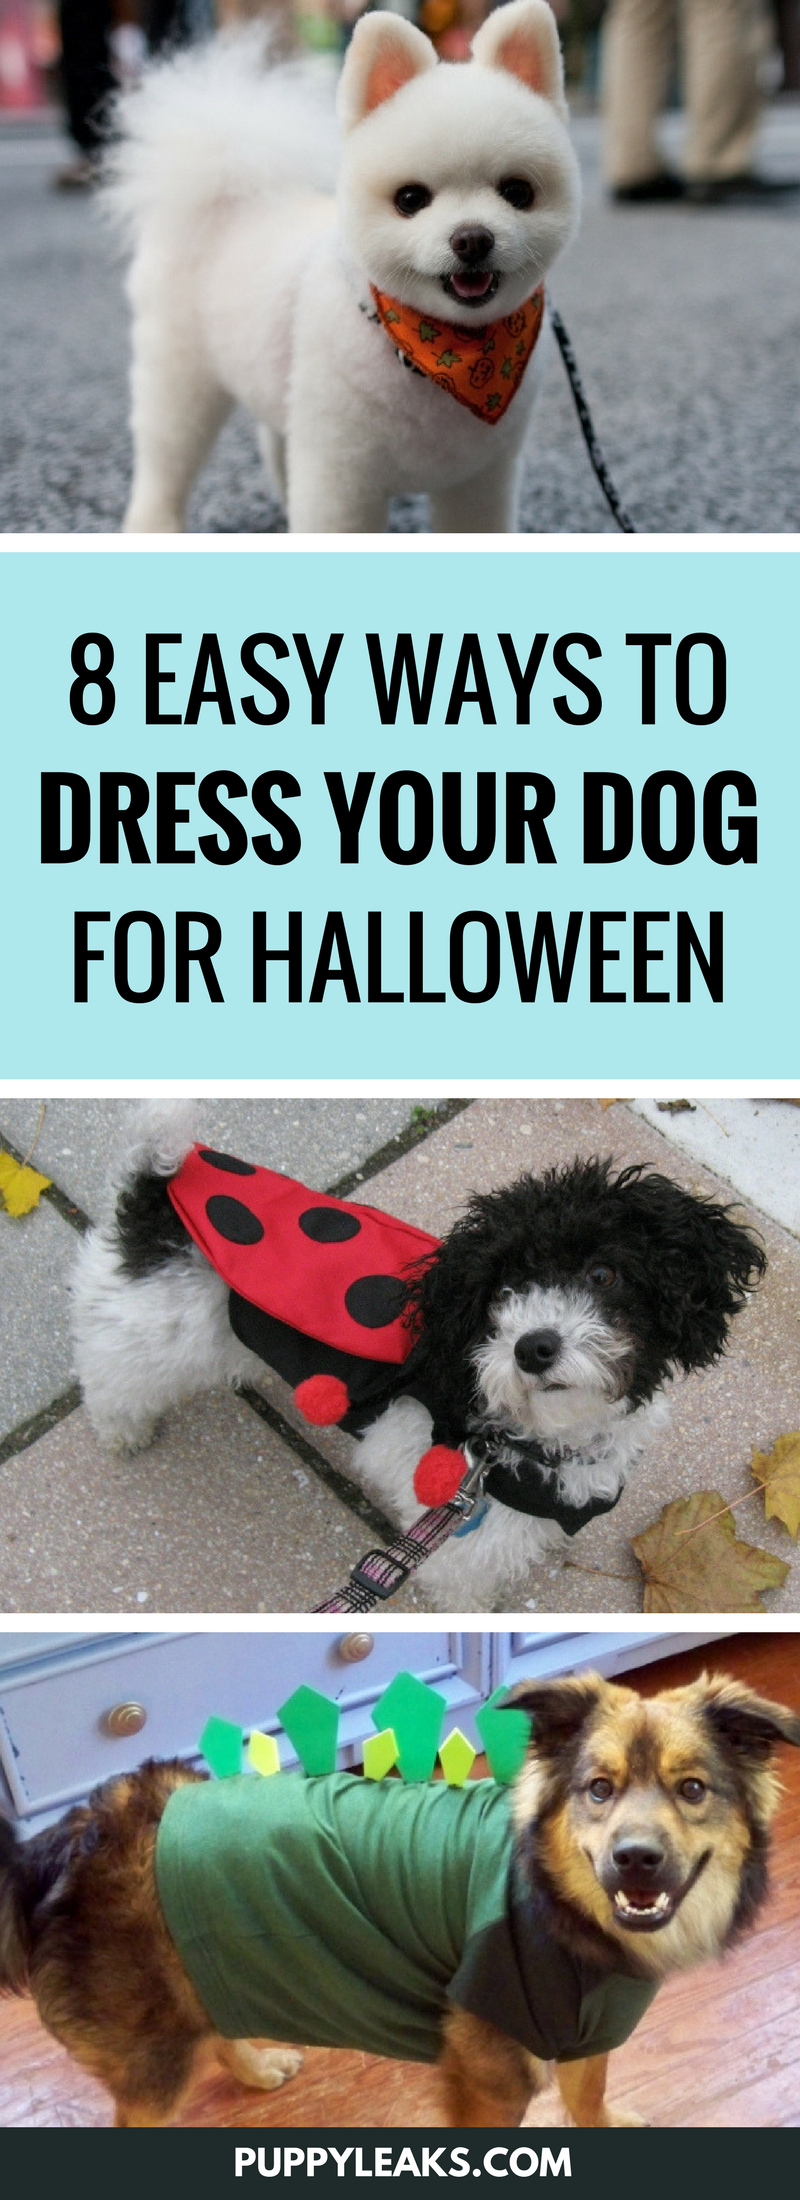 8 Easy Ways to Dress Your Dog For Halloween